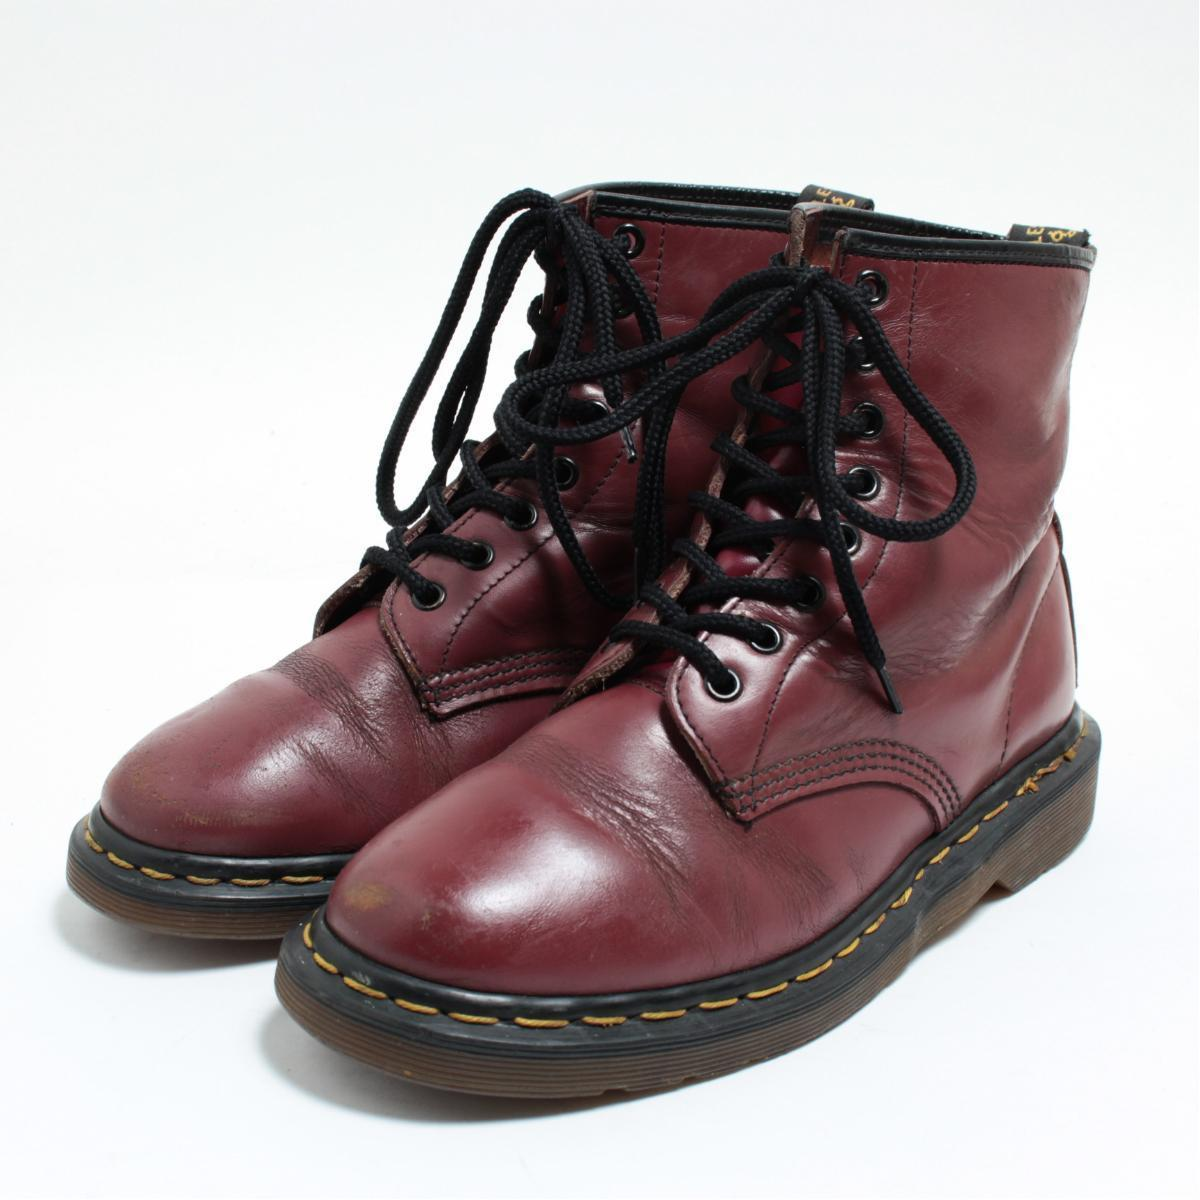 0e5df5cd22eb Men 25.0cm  boj8180 made in the doctor Martin Dr.Martens SKECHERS  collaboration 8 hall boots U.K.